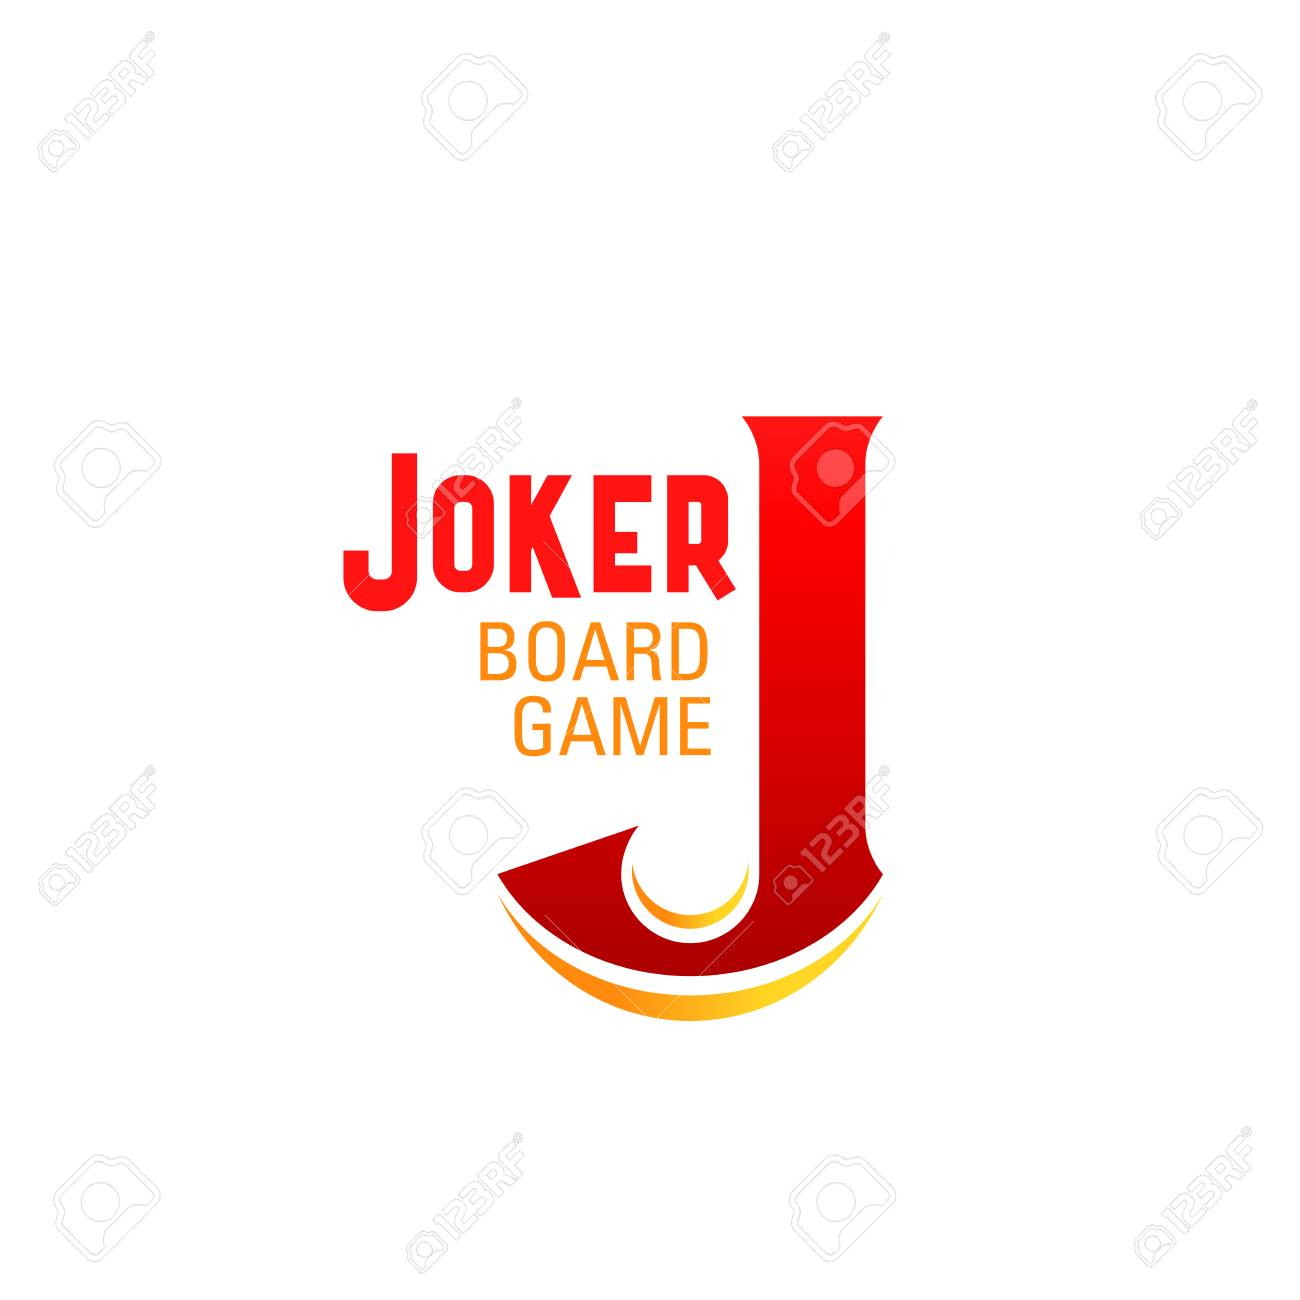 Joker board game letter J icon for table game or boardgame family entertainment and leisure design. Vector letter J for educational or kid and children fun casino poker games - 114520032